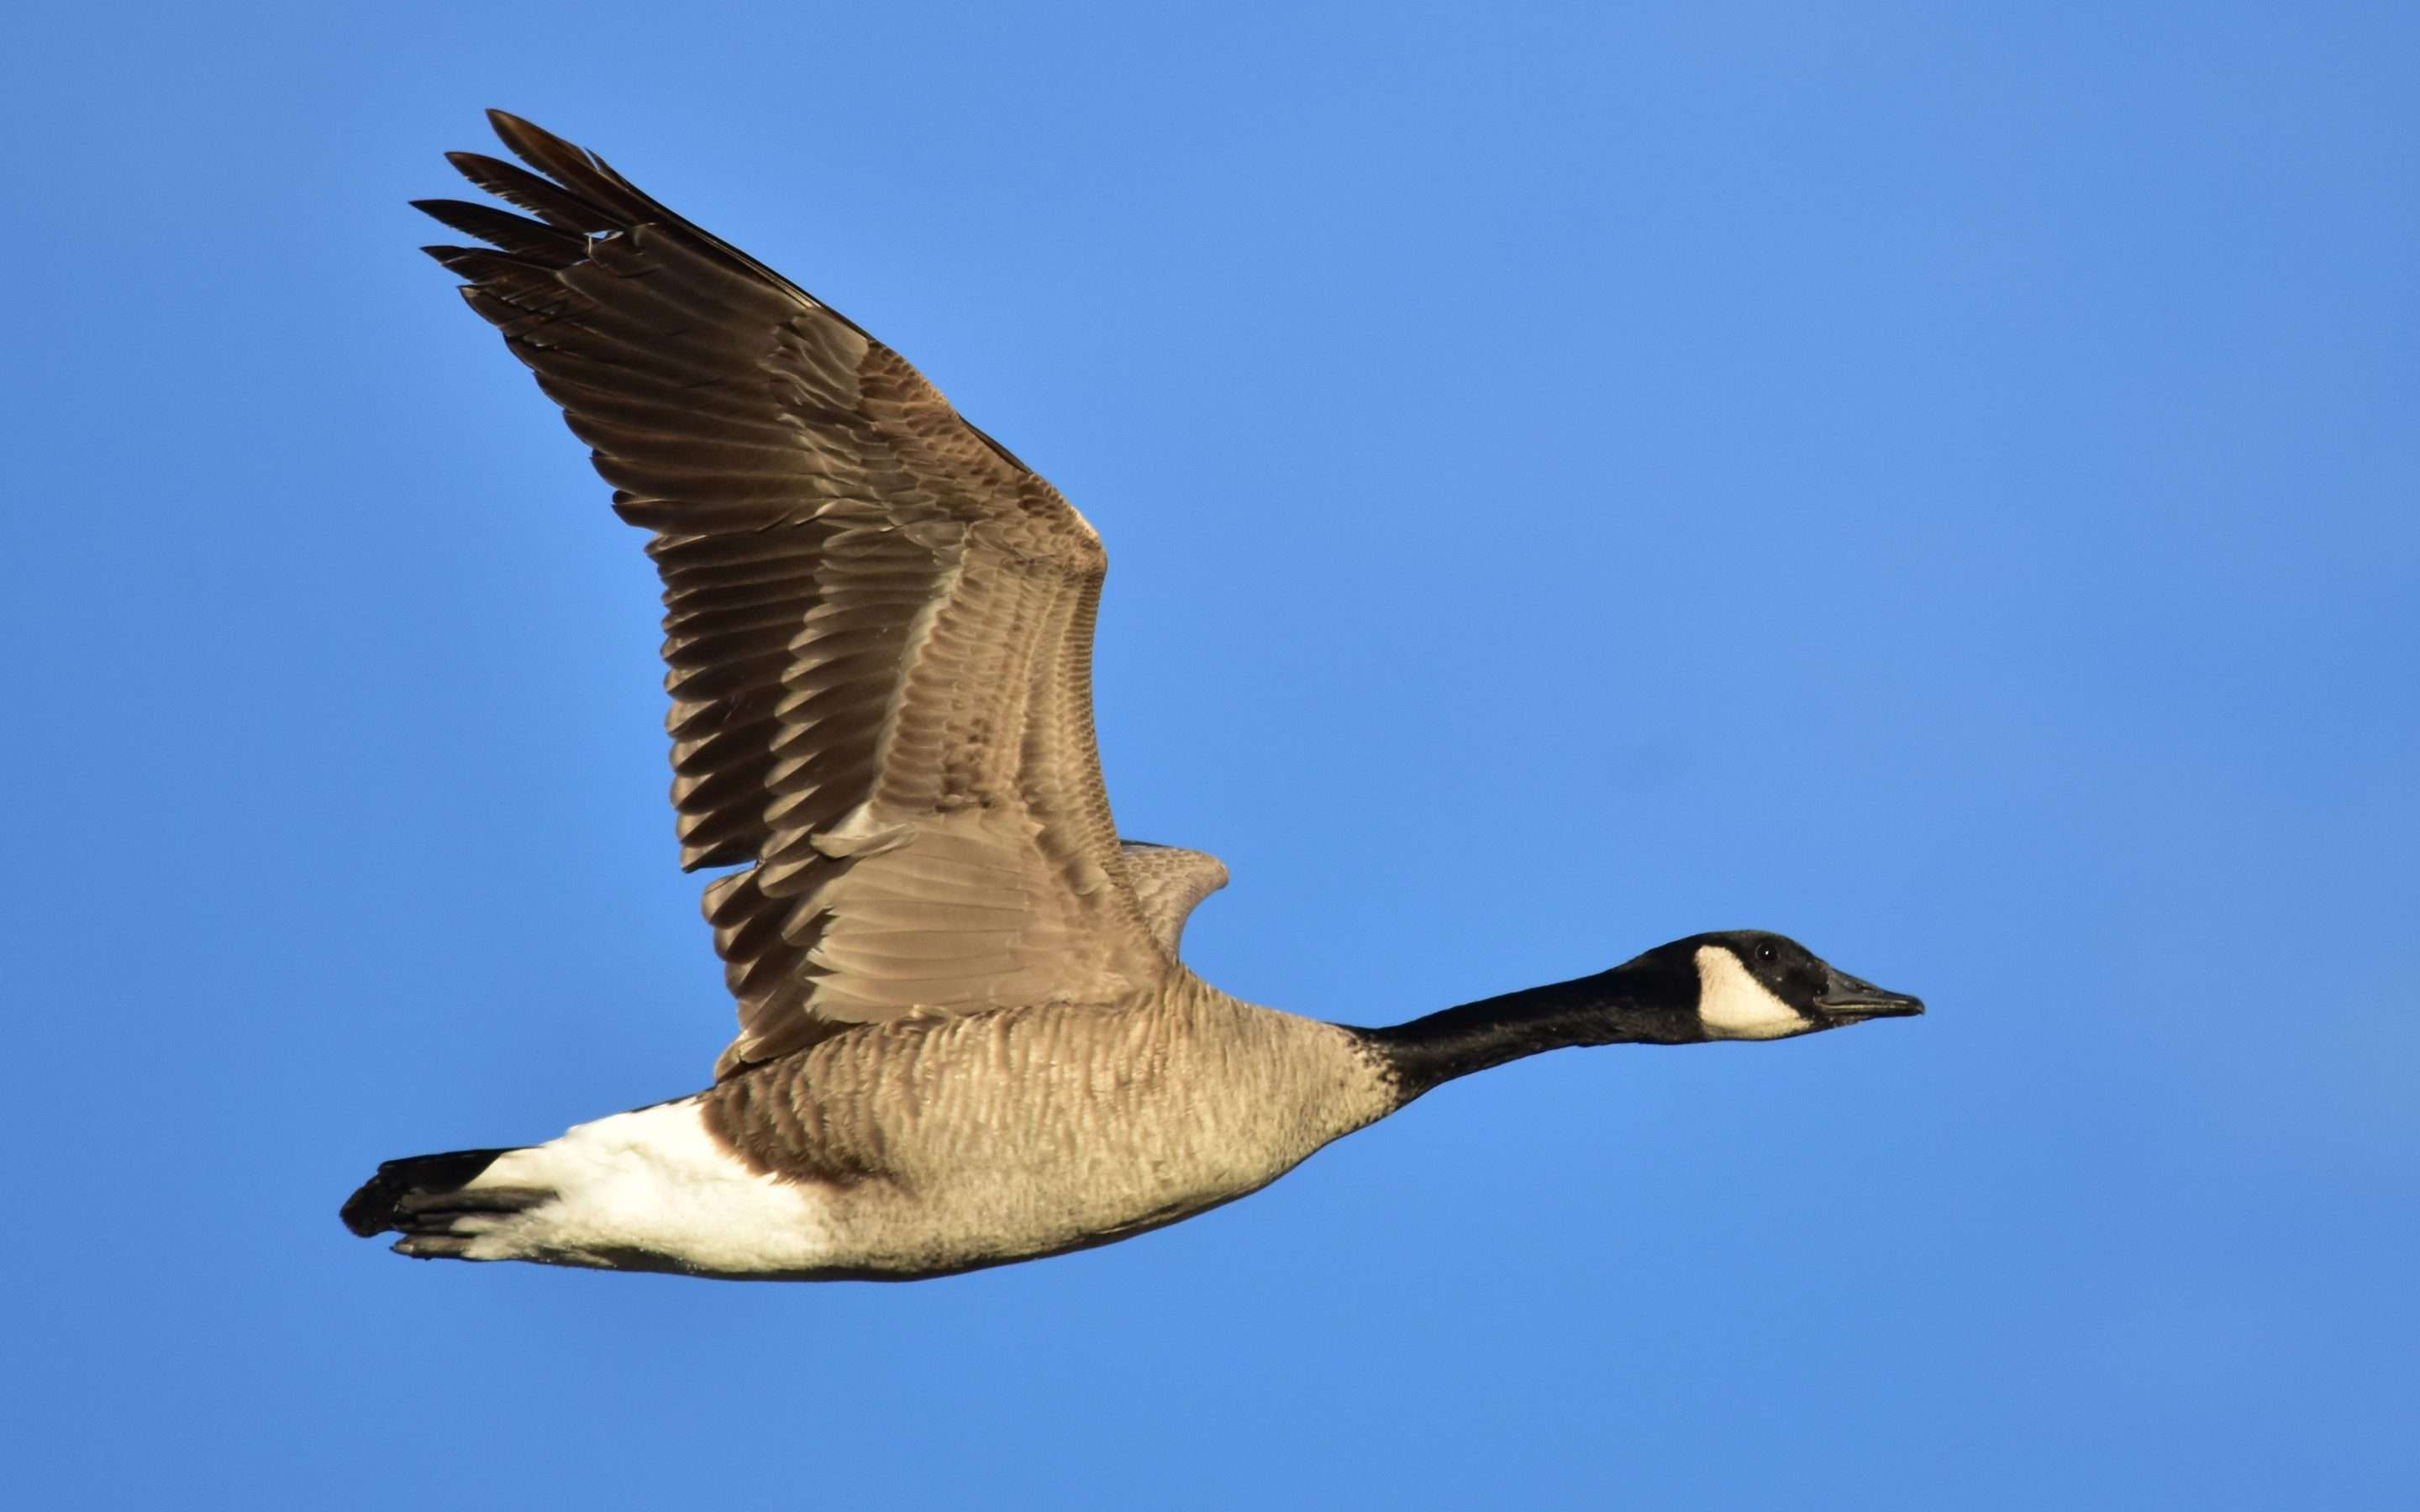 Boeing's Mythical Canada Goose